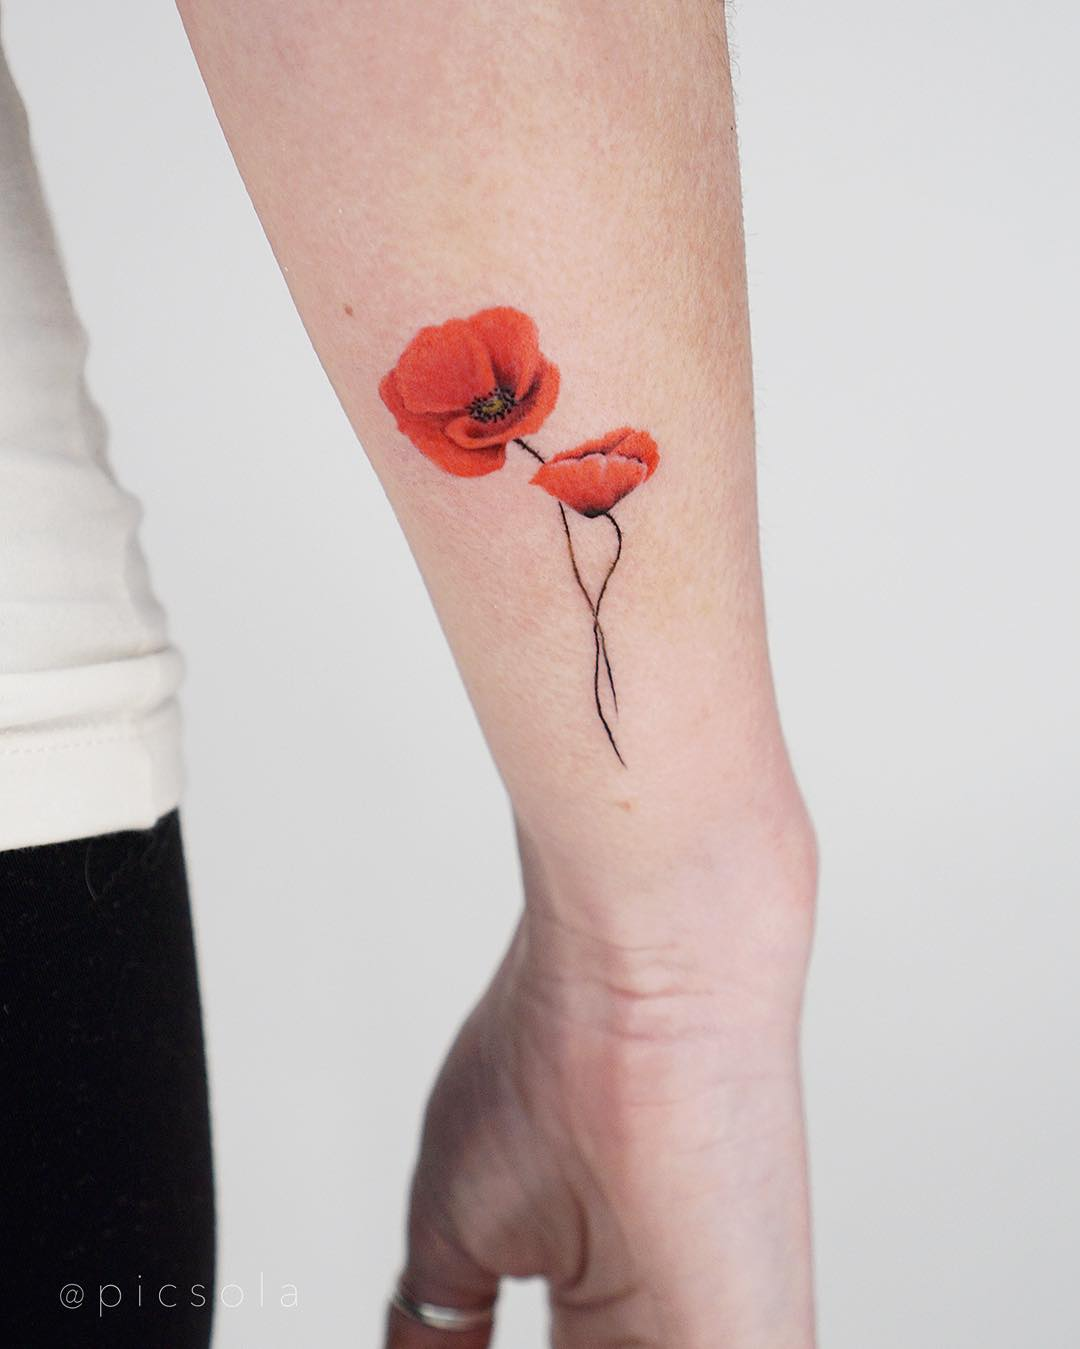 Small poppies by tattooist picsola